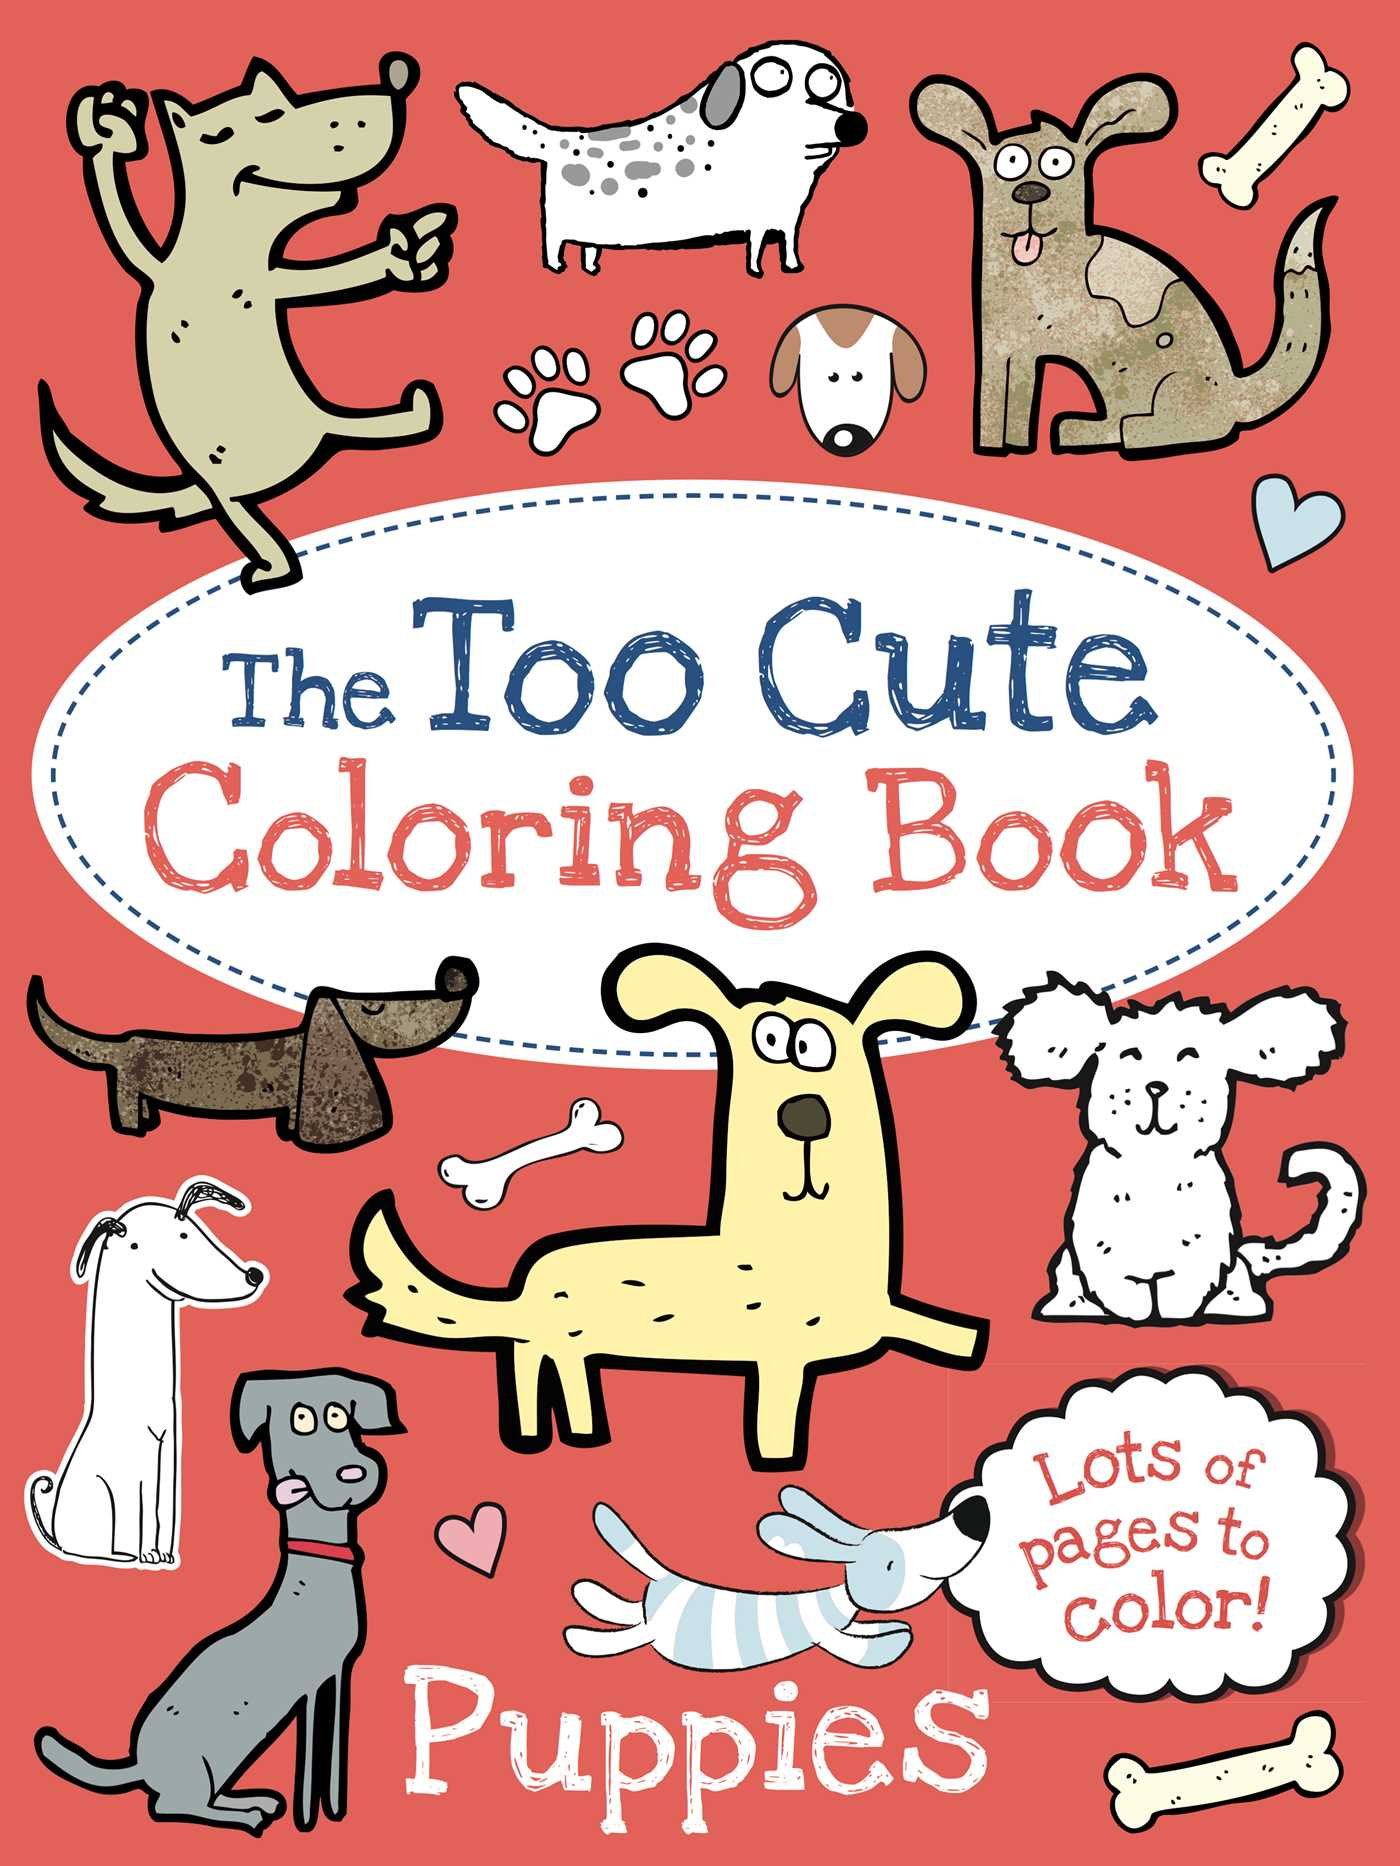 Book Cover Image Jpg The Too Cute Coloring Puppies